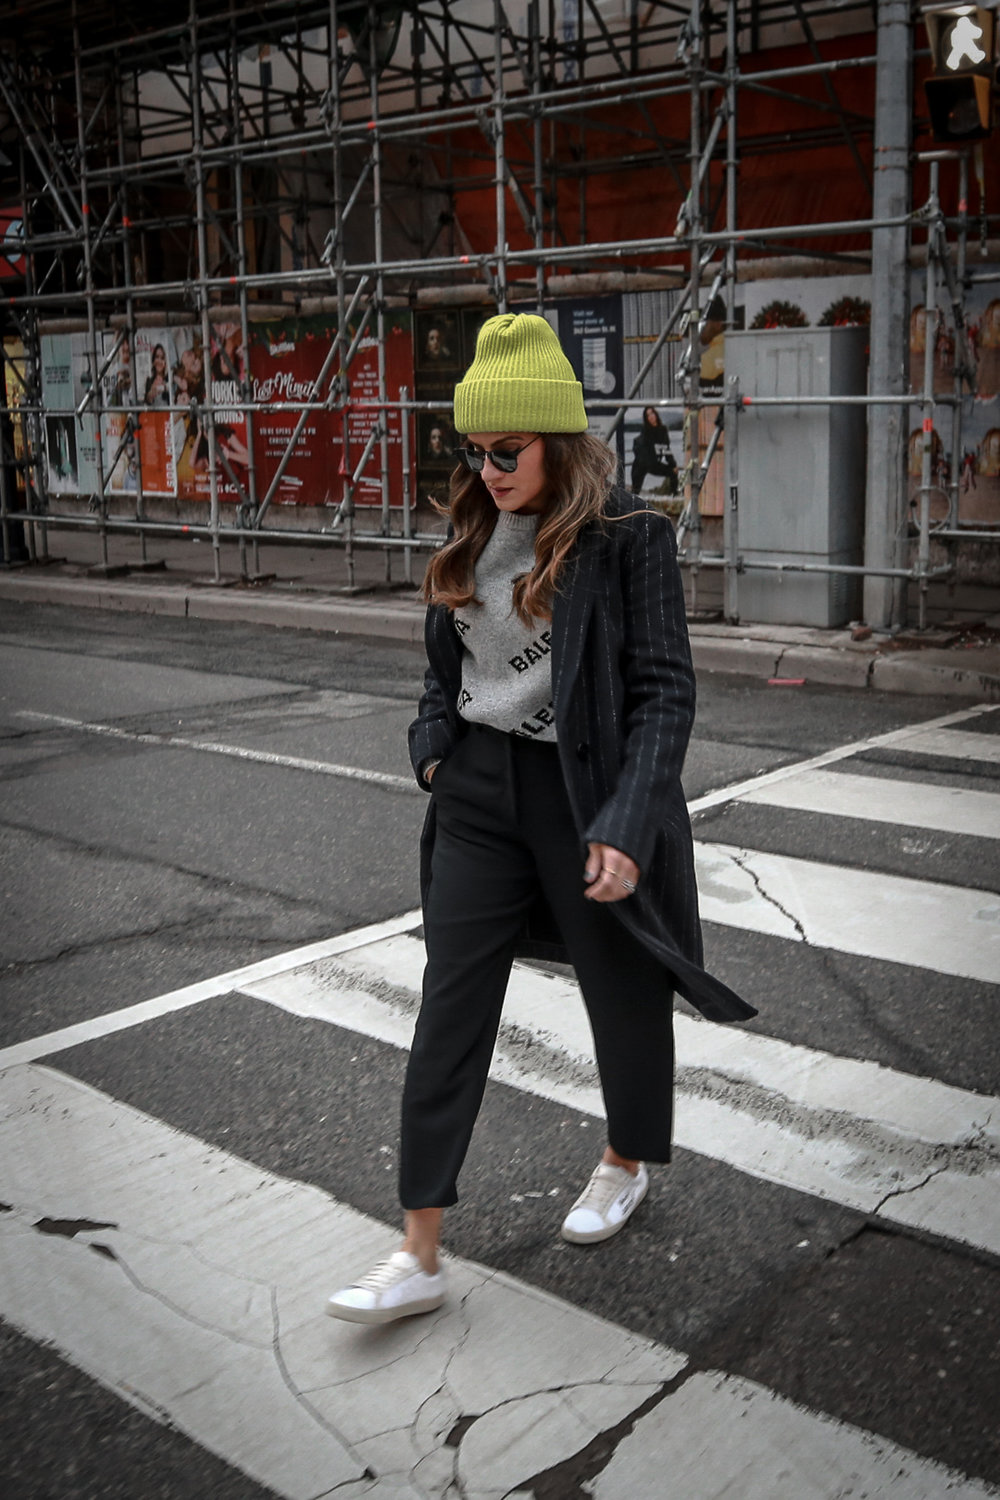 Nathalie Martin wearing Balenciaga cropped logo sweater, Aritzia black Jallade pant, Saint Laurent white canvas court sneakers, Aritzia navy pinstripe Stedman coat, neon green beanie, Bonlook Way sunglasses, street style, woahstyle.com_3869.jpg